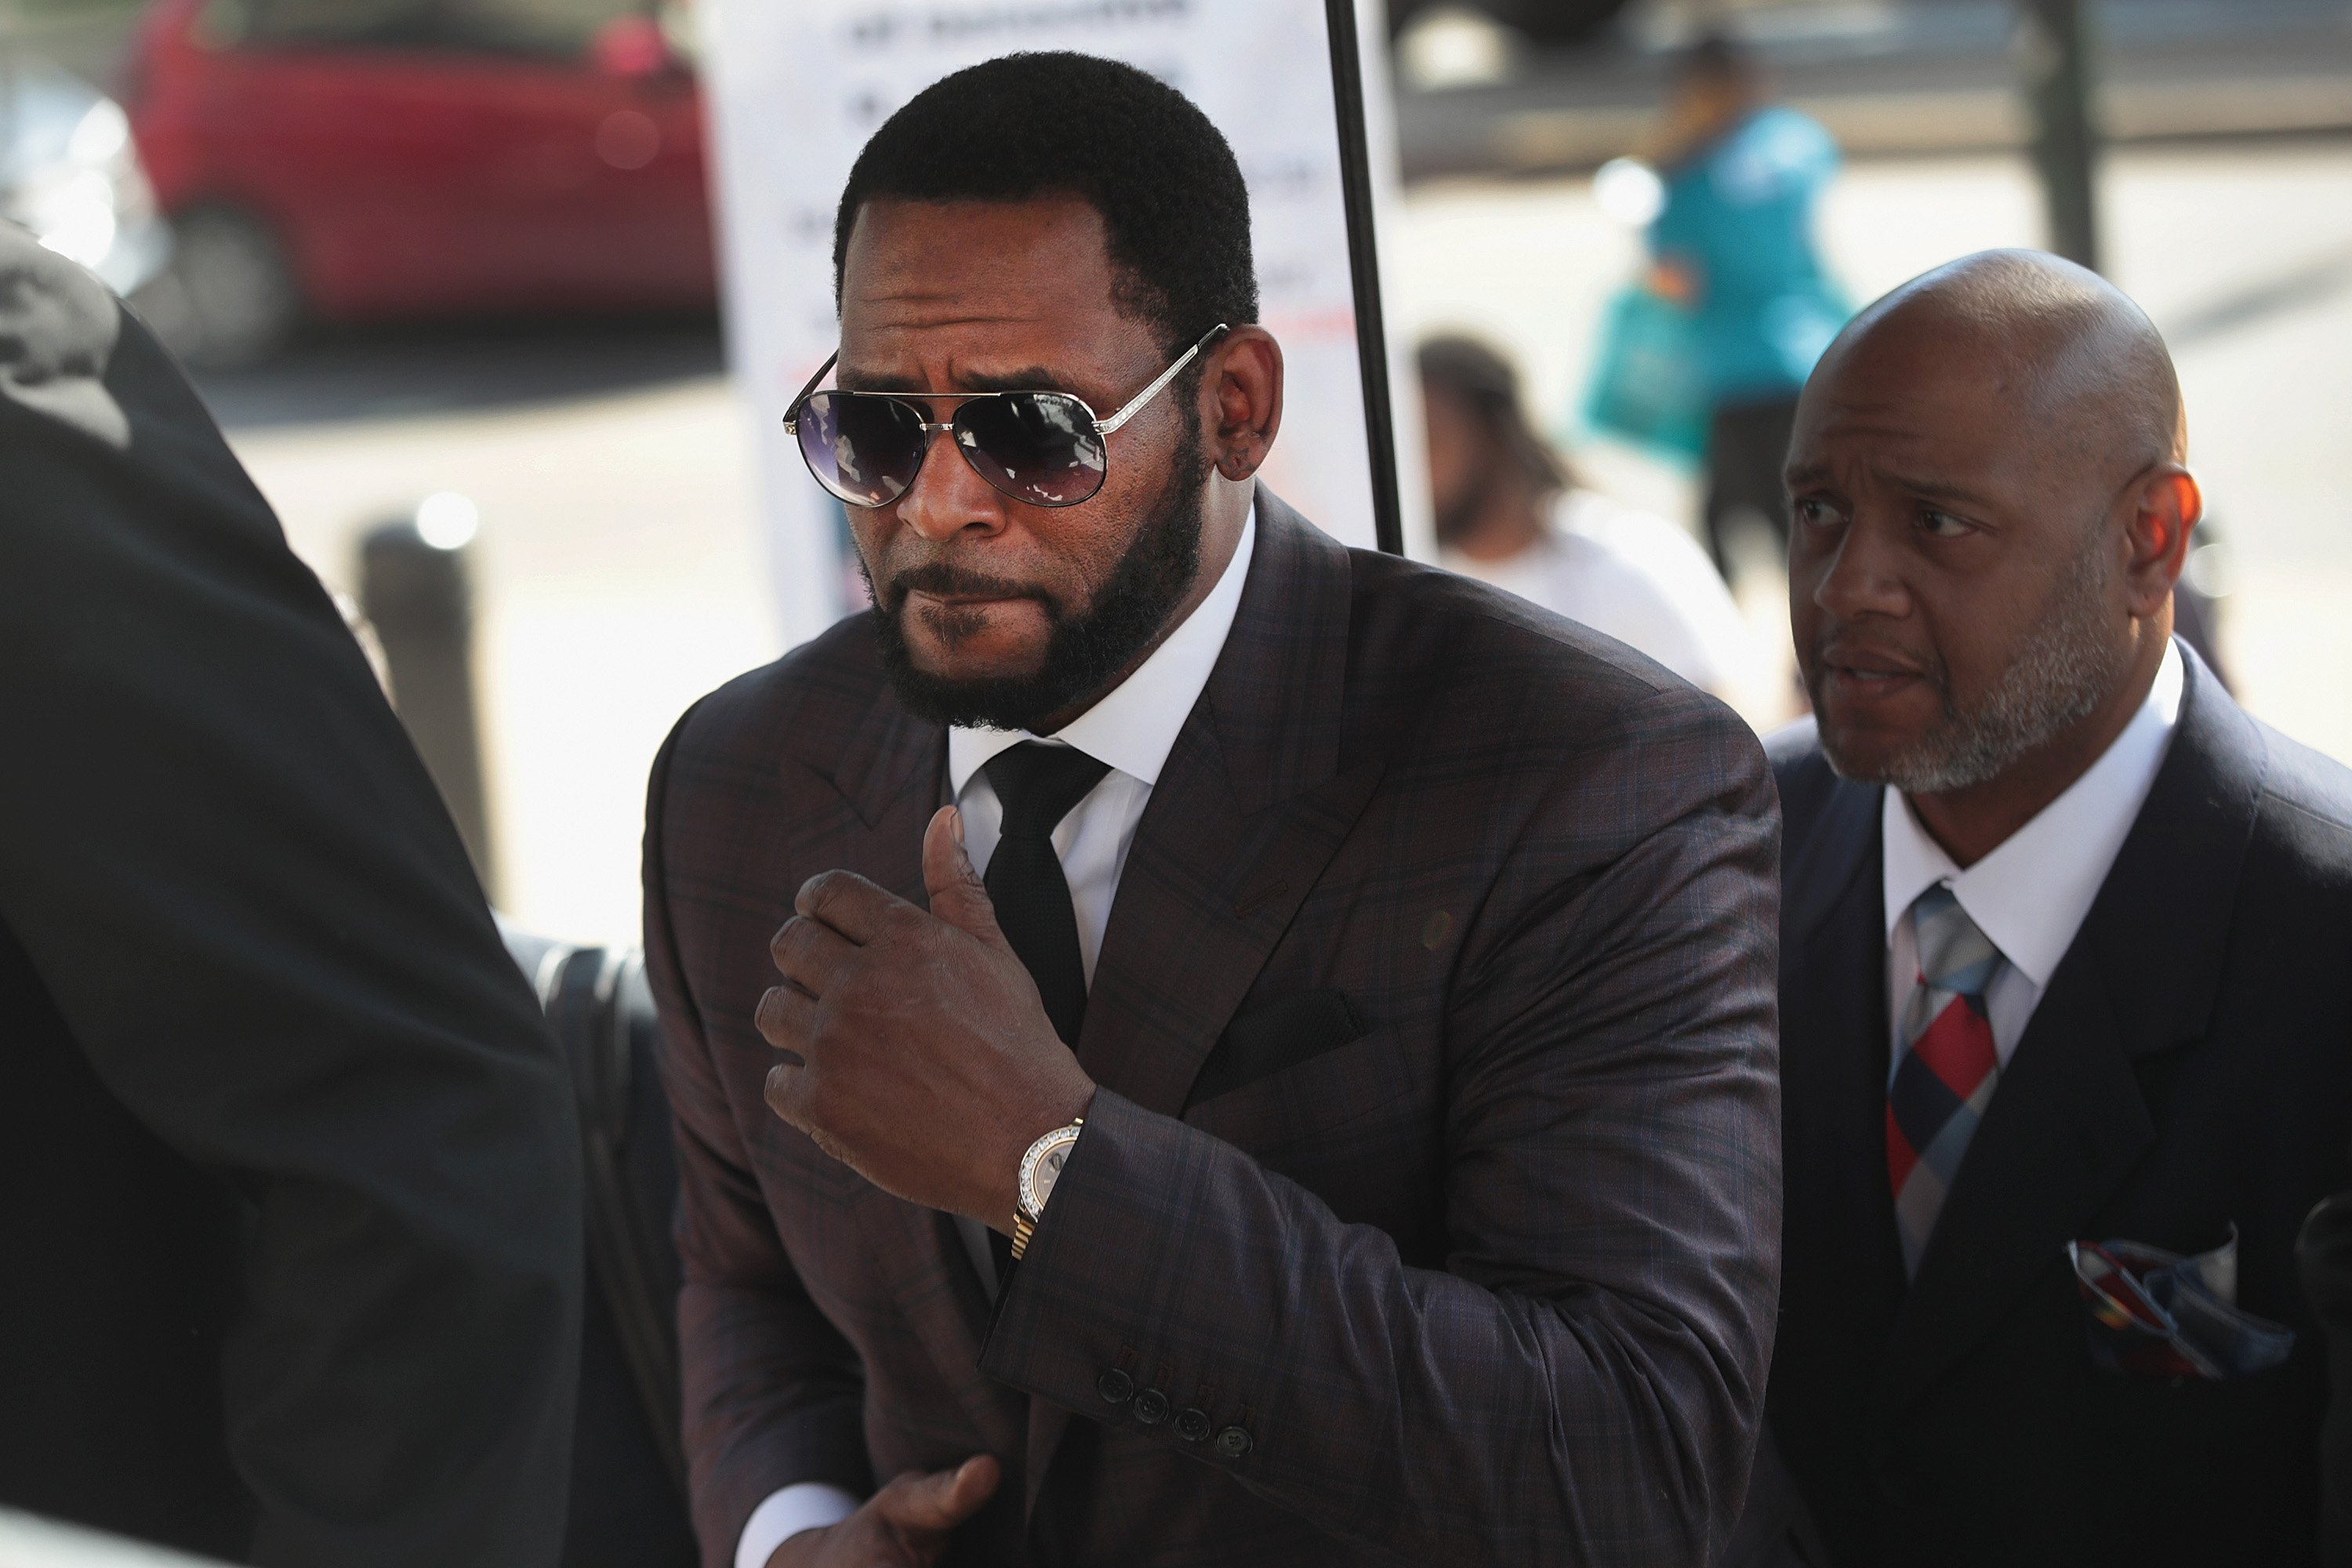 R. Kelly at court for a hearing on June 26, 2019 in Chicago, Illinois. Kelly is facing several counts of aggravated sexual abuse | Photo: Getty Images